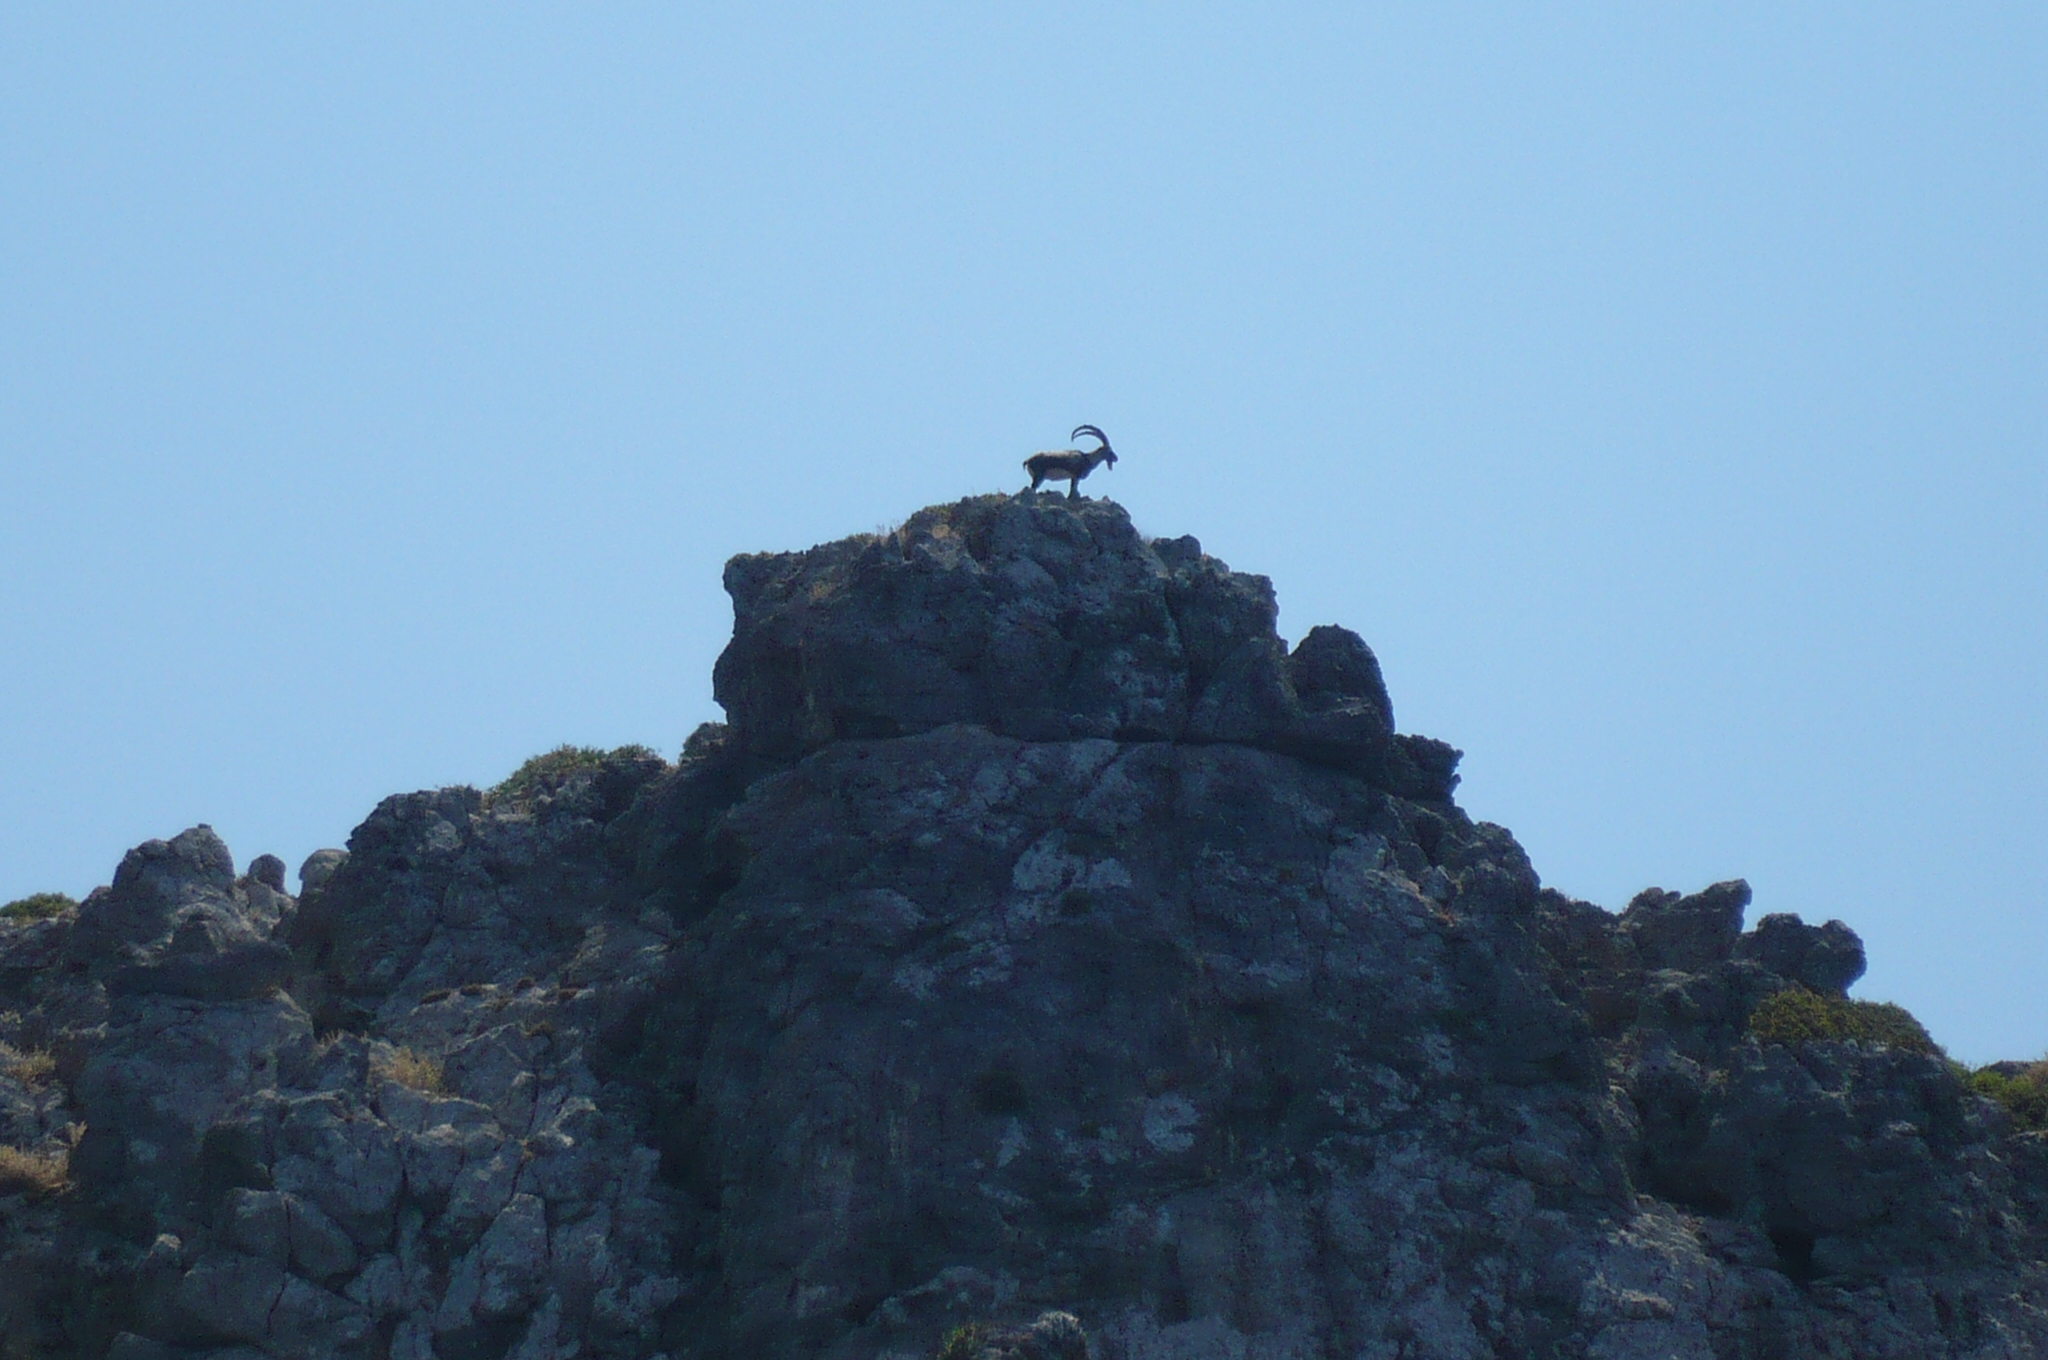 Ram at the top of the mountain